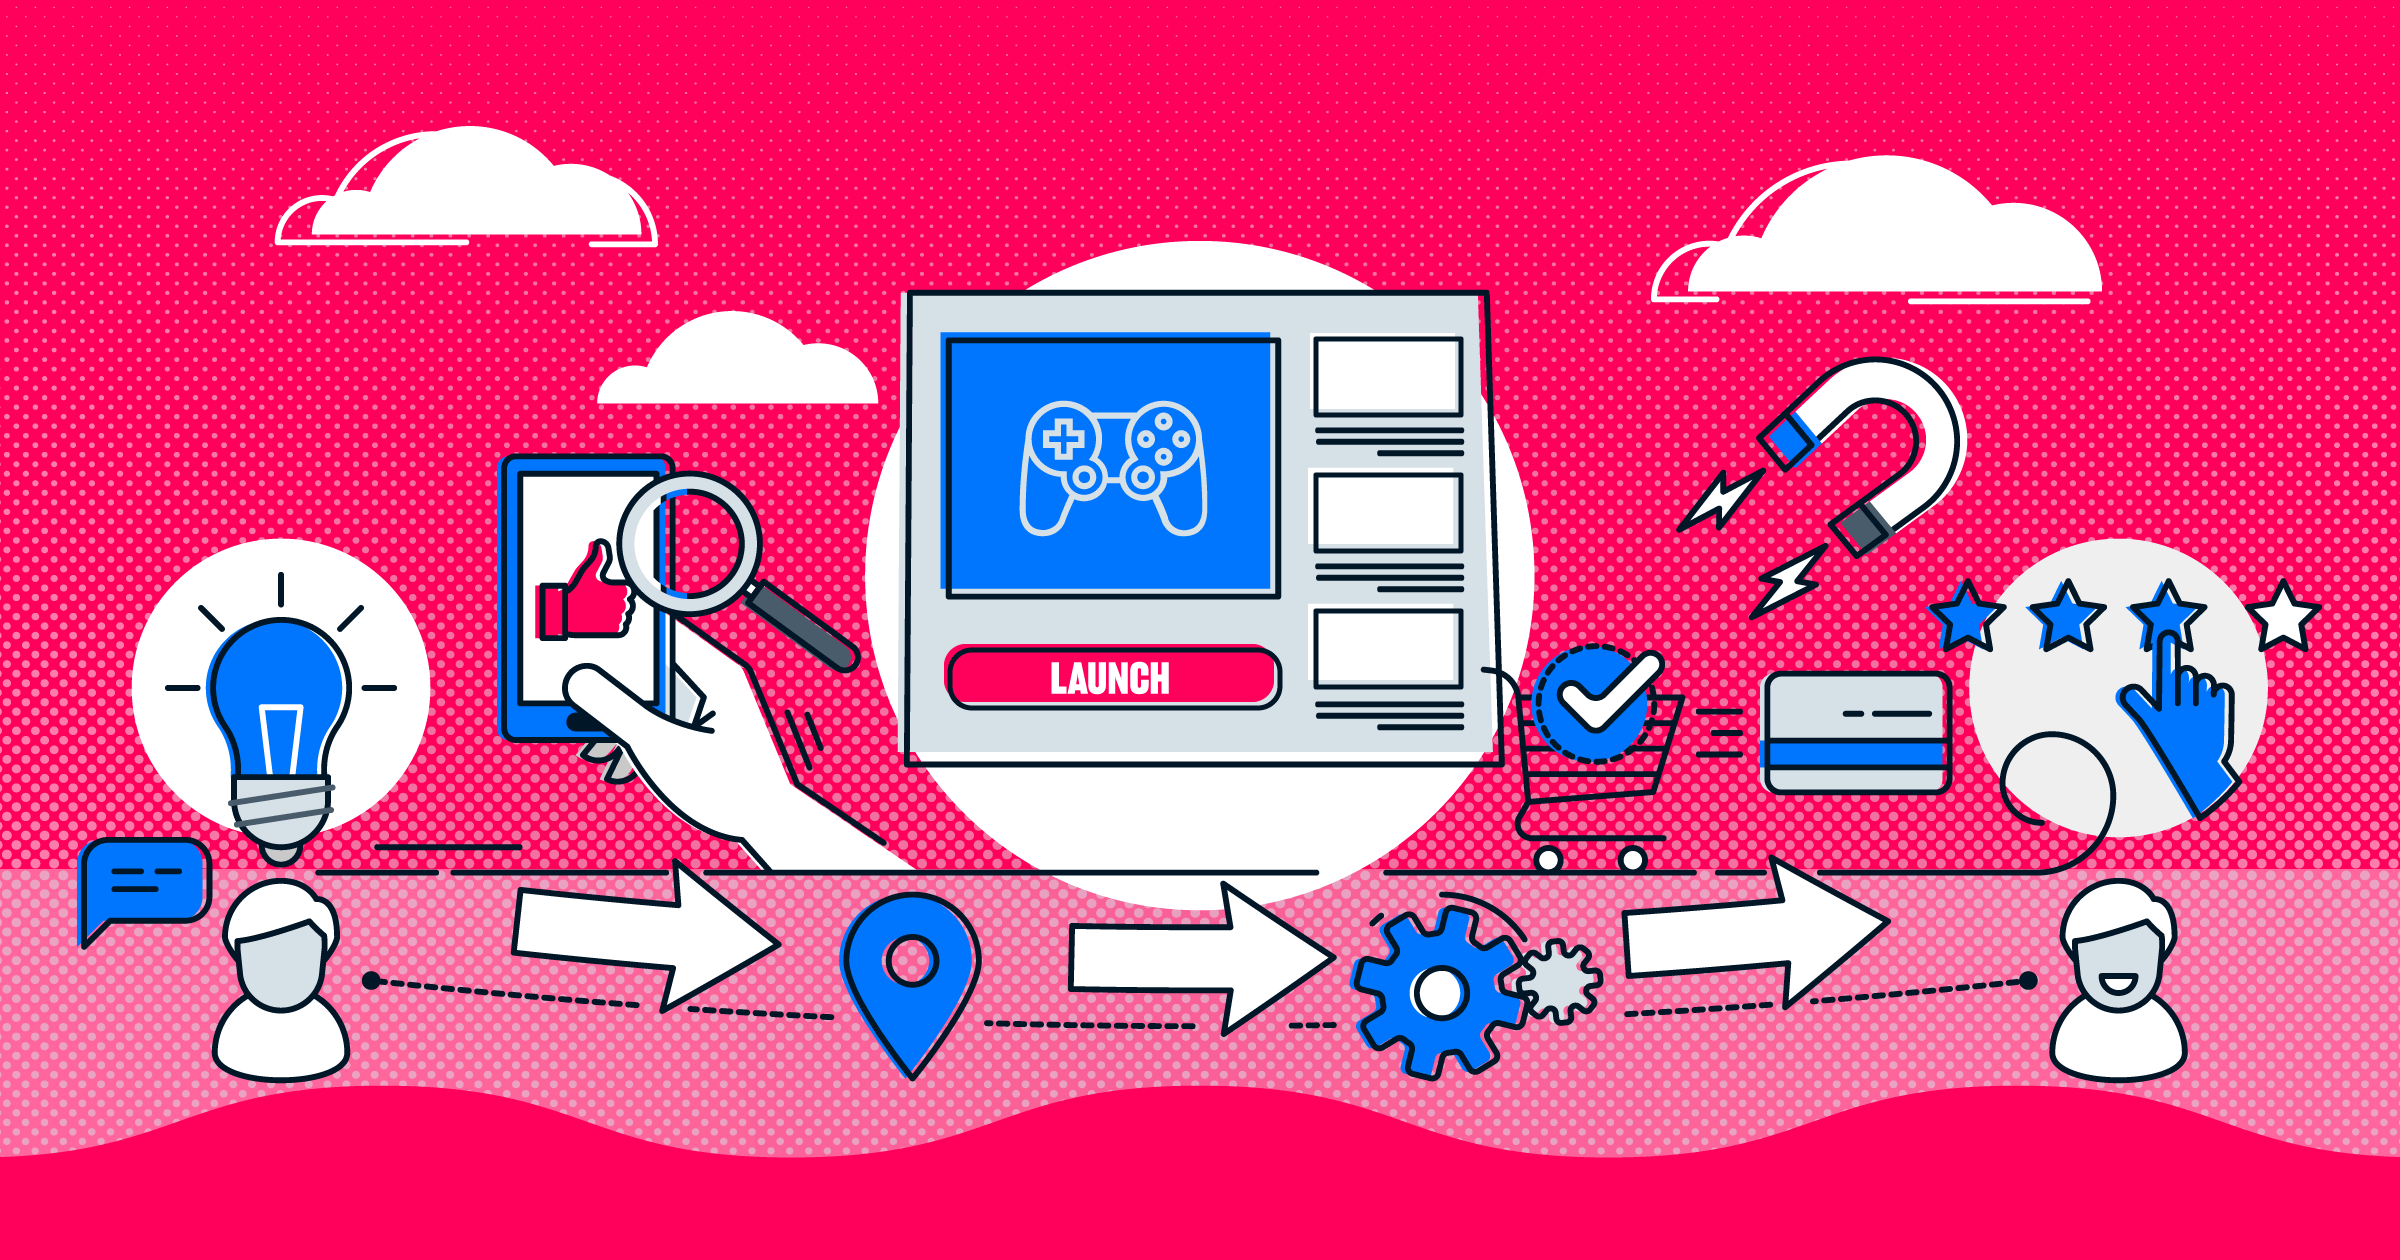 HOW THE RIGHT CUSTOMER JOURNEY HELPS YOU ACQUIRE PAYING USERS